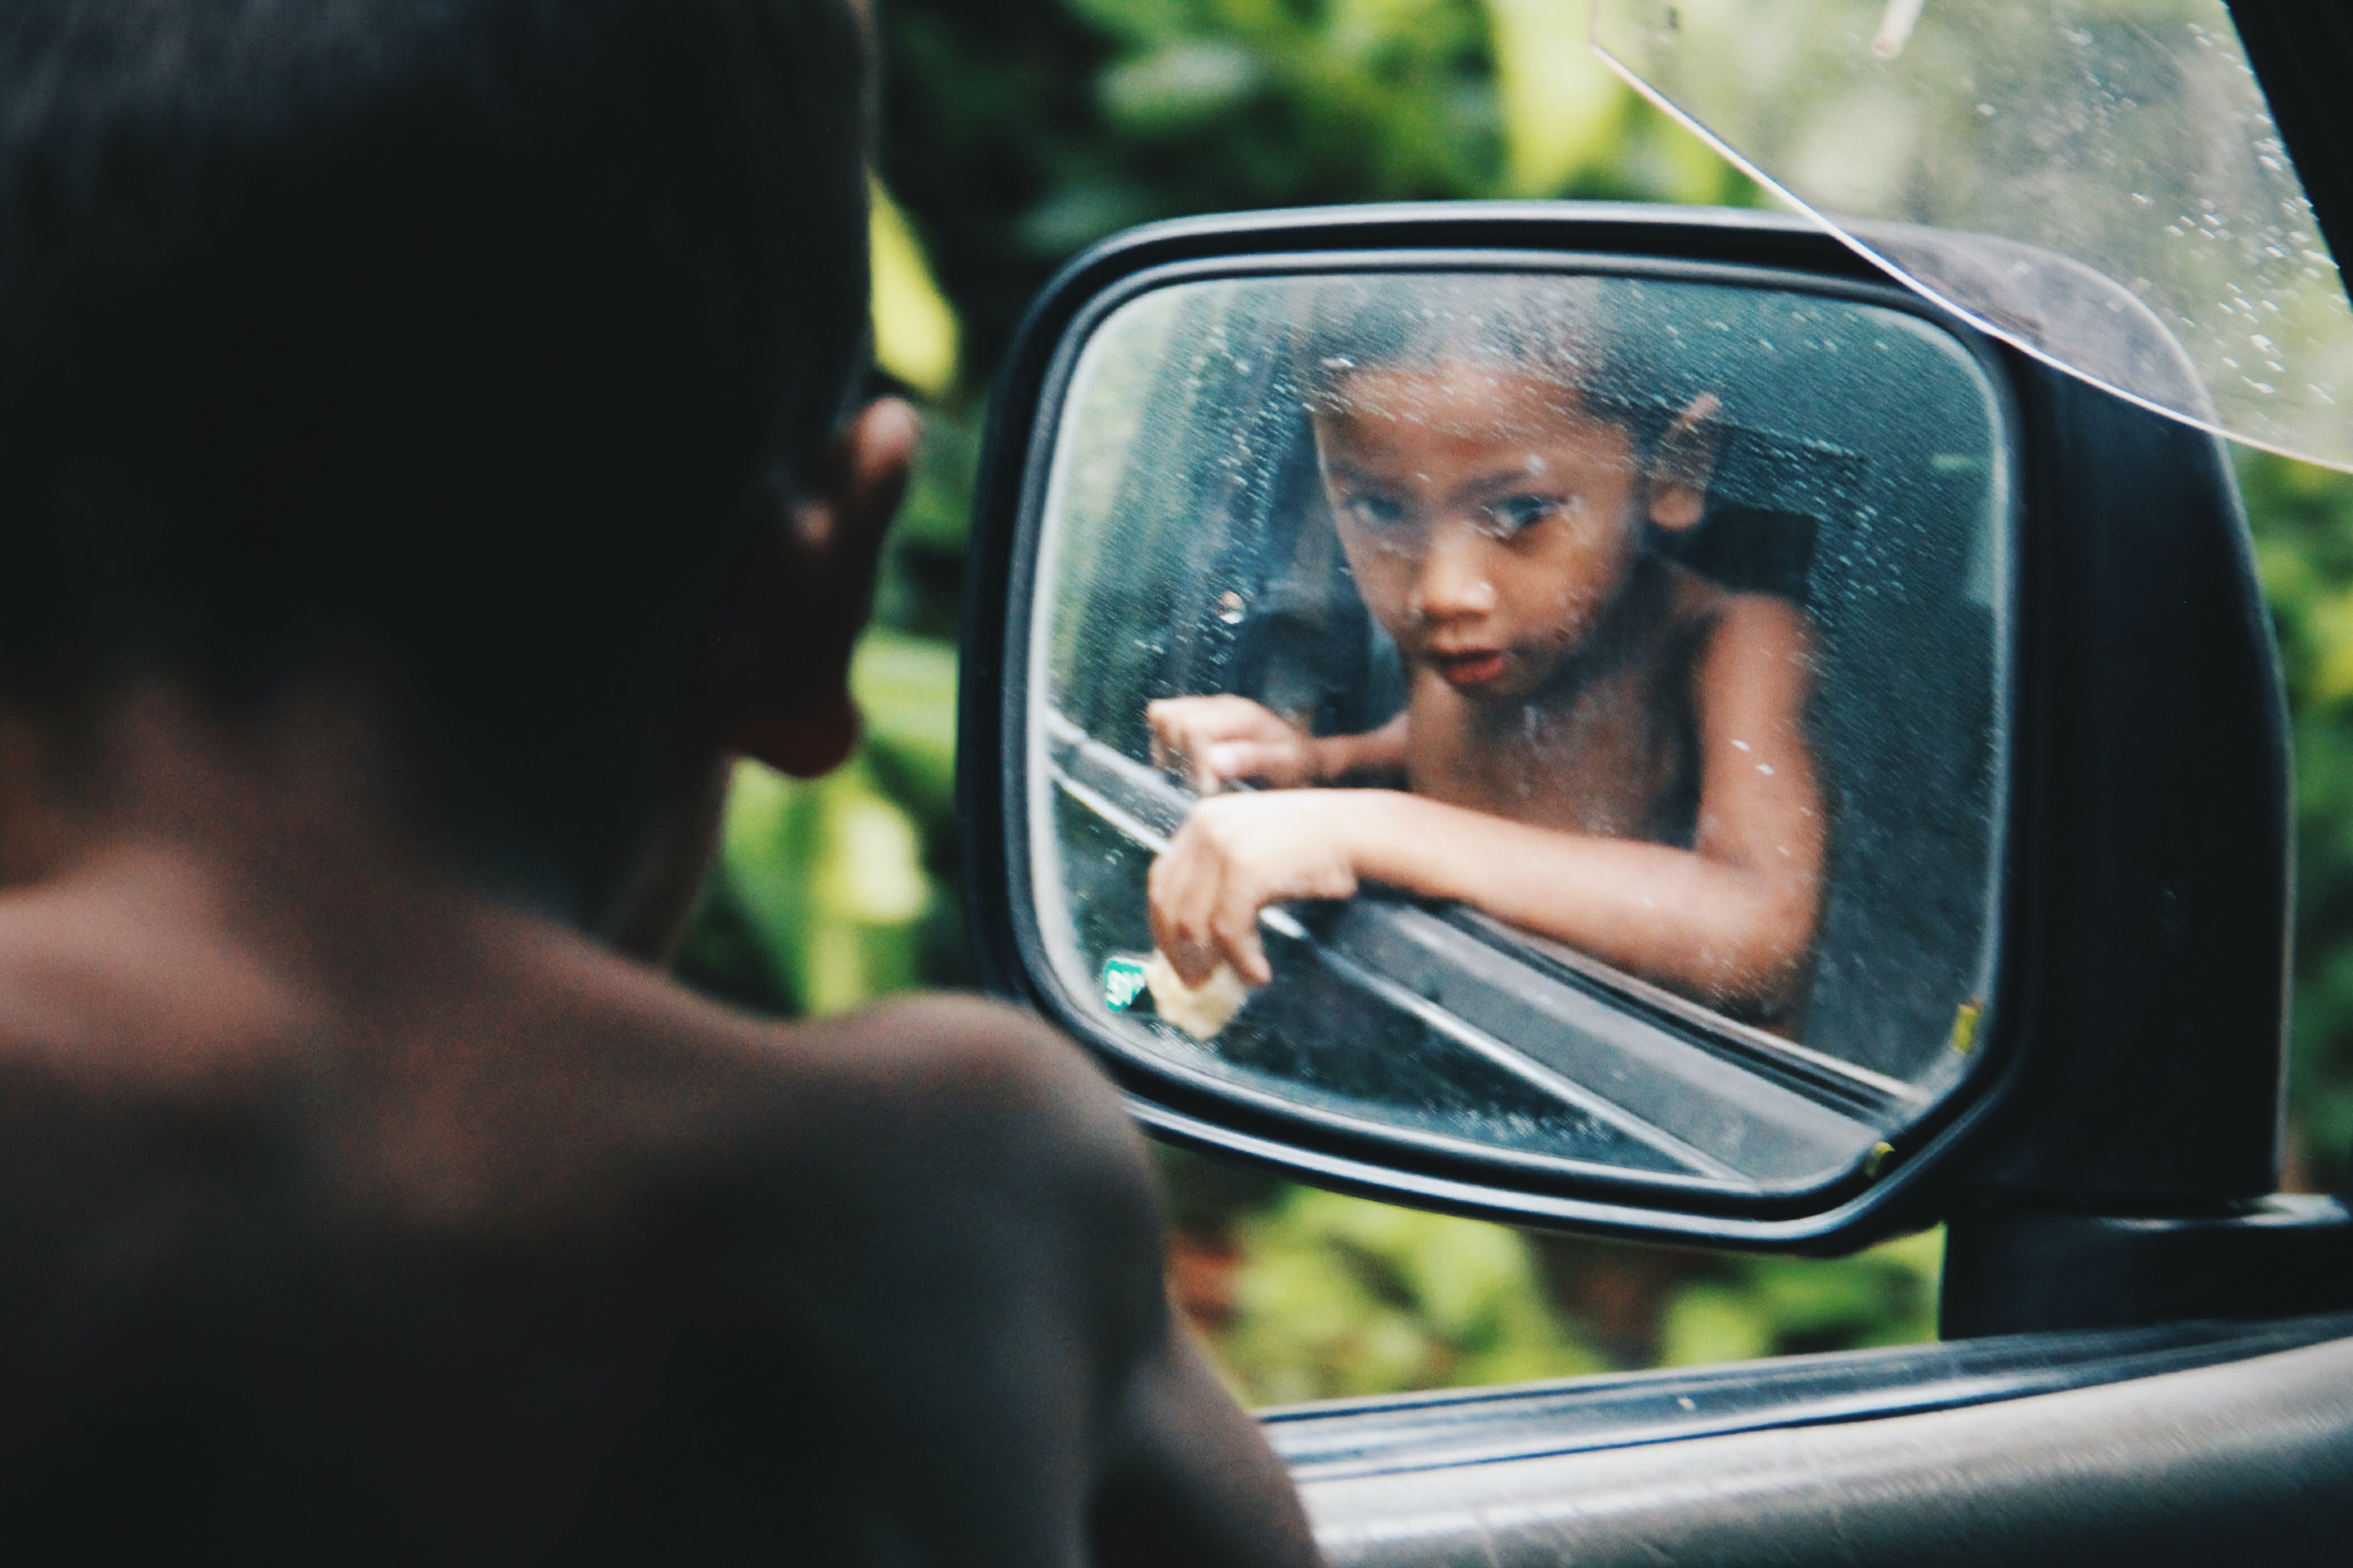 toddler looking at his reflection on wing mirror during daytime